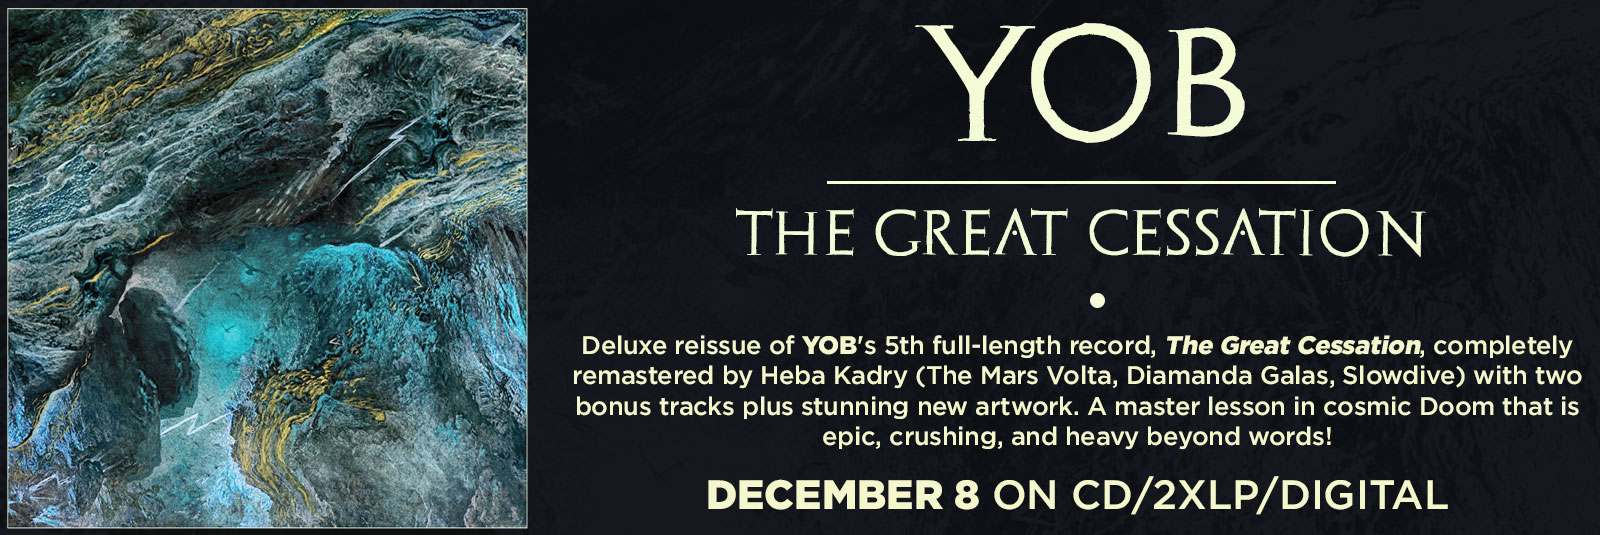 yob-the-great-cessation